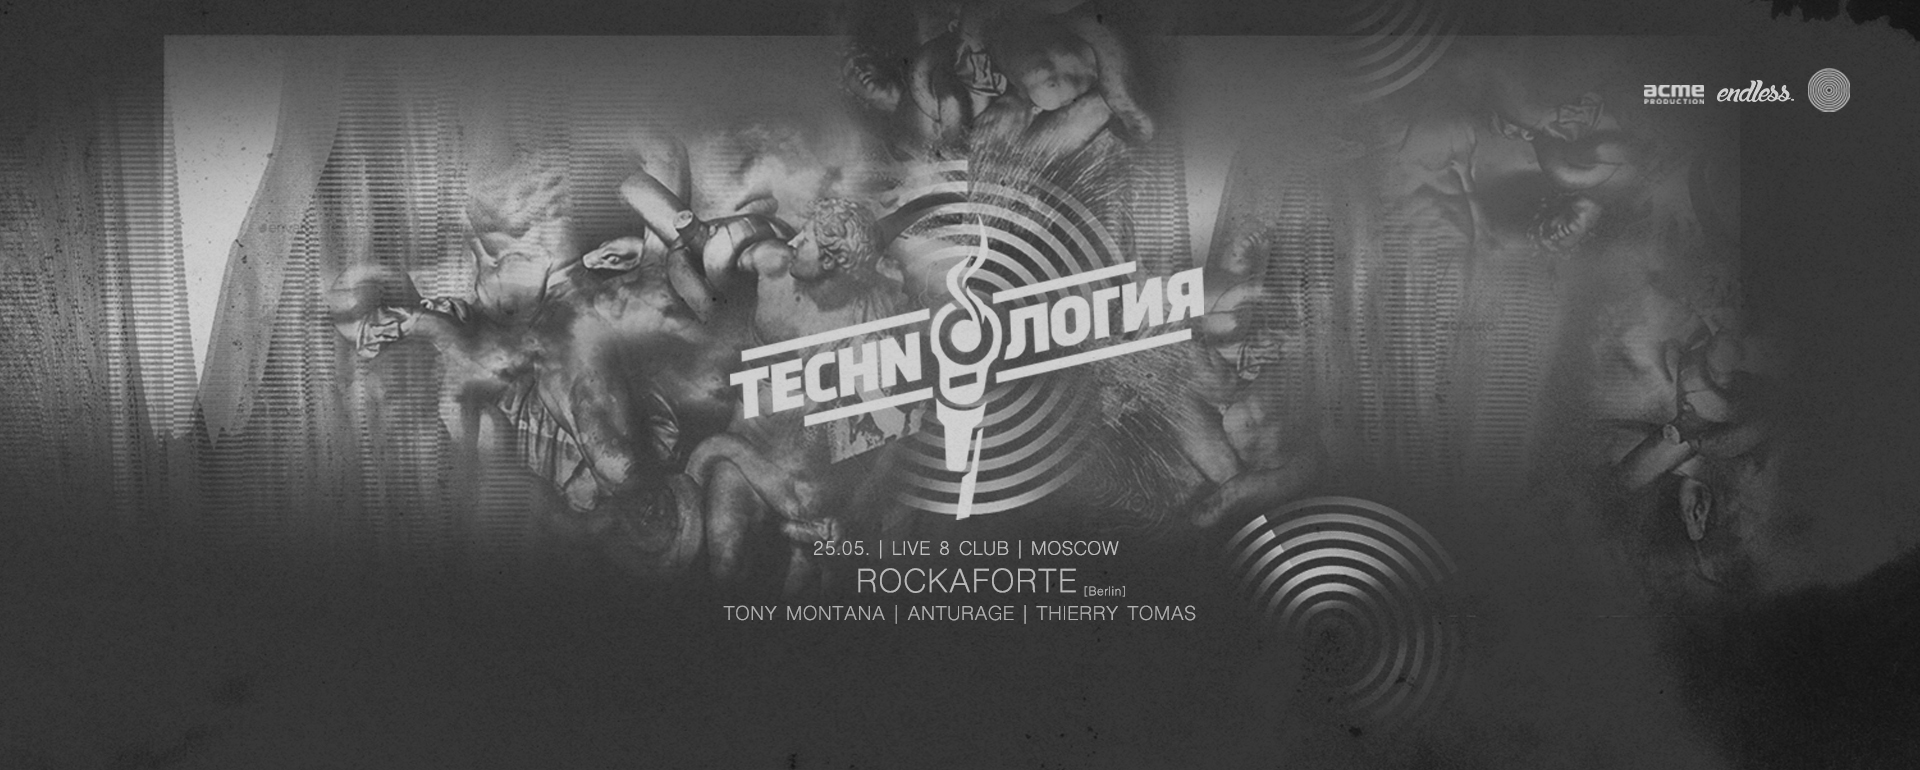 Techn'o'логия w/ Rockaforte [DE] [Endless Music]